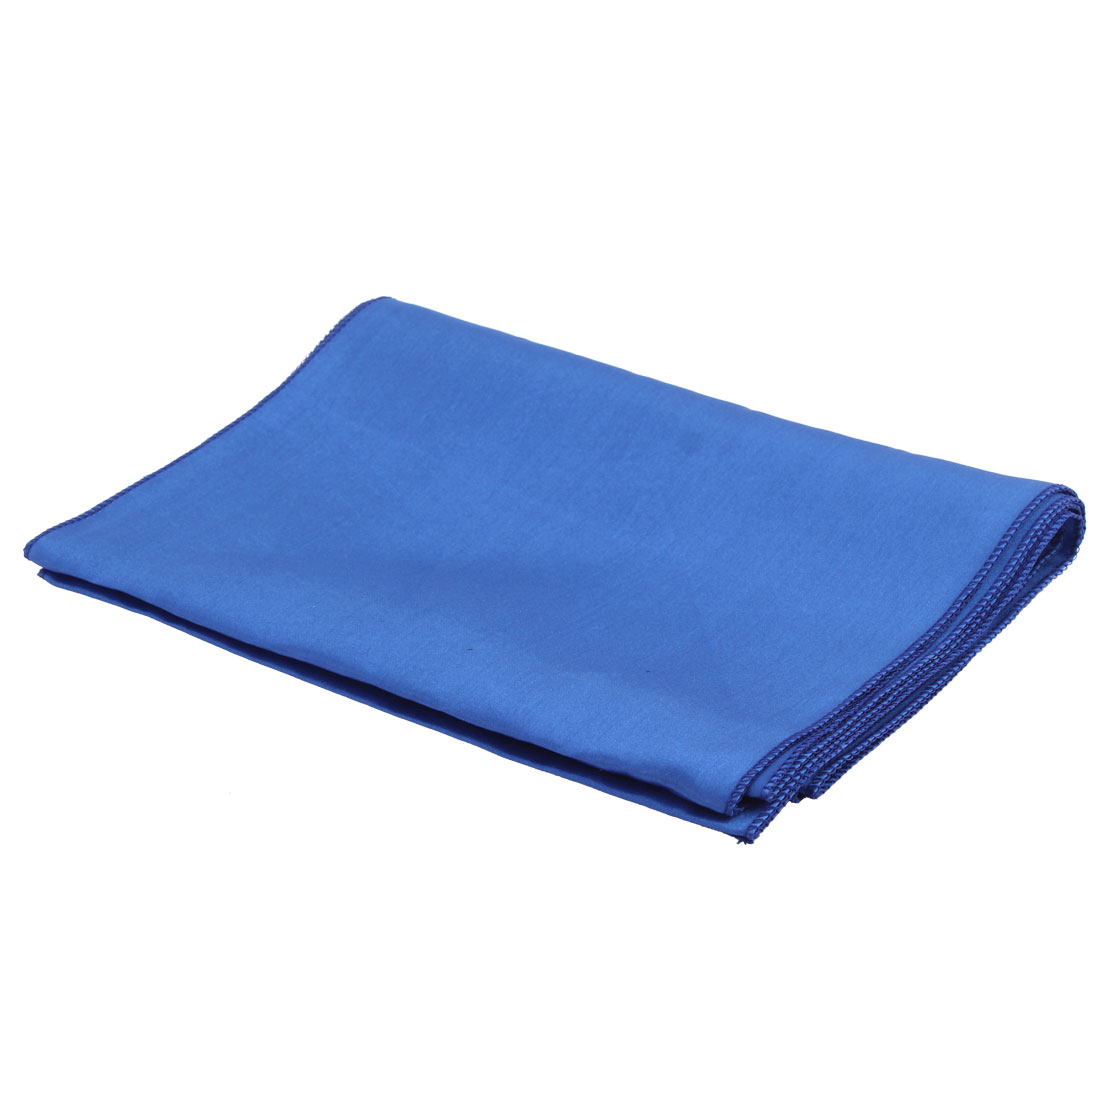 Hotel Home Polyester Sprawl Table Runner Mats Wedding Party Venue Ornament Royal Blue